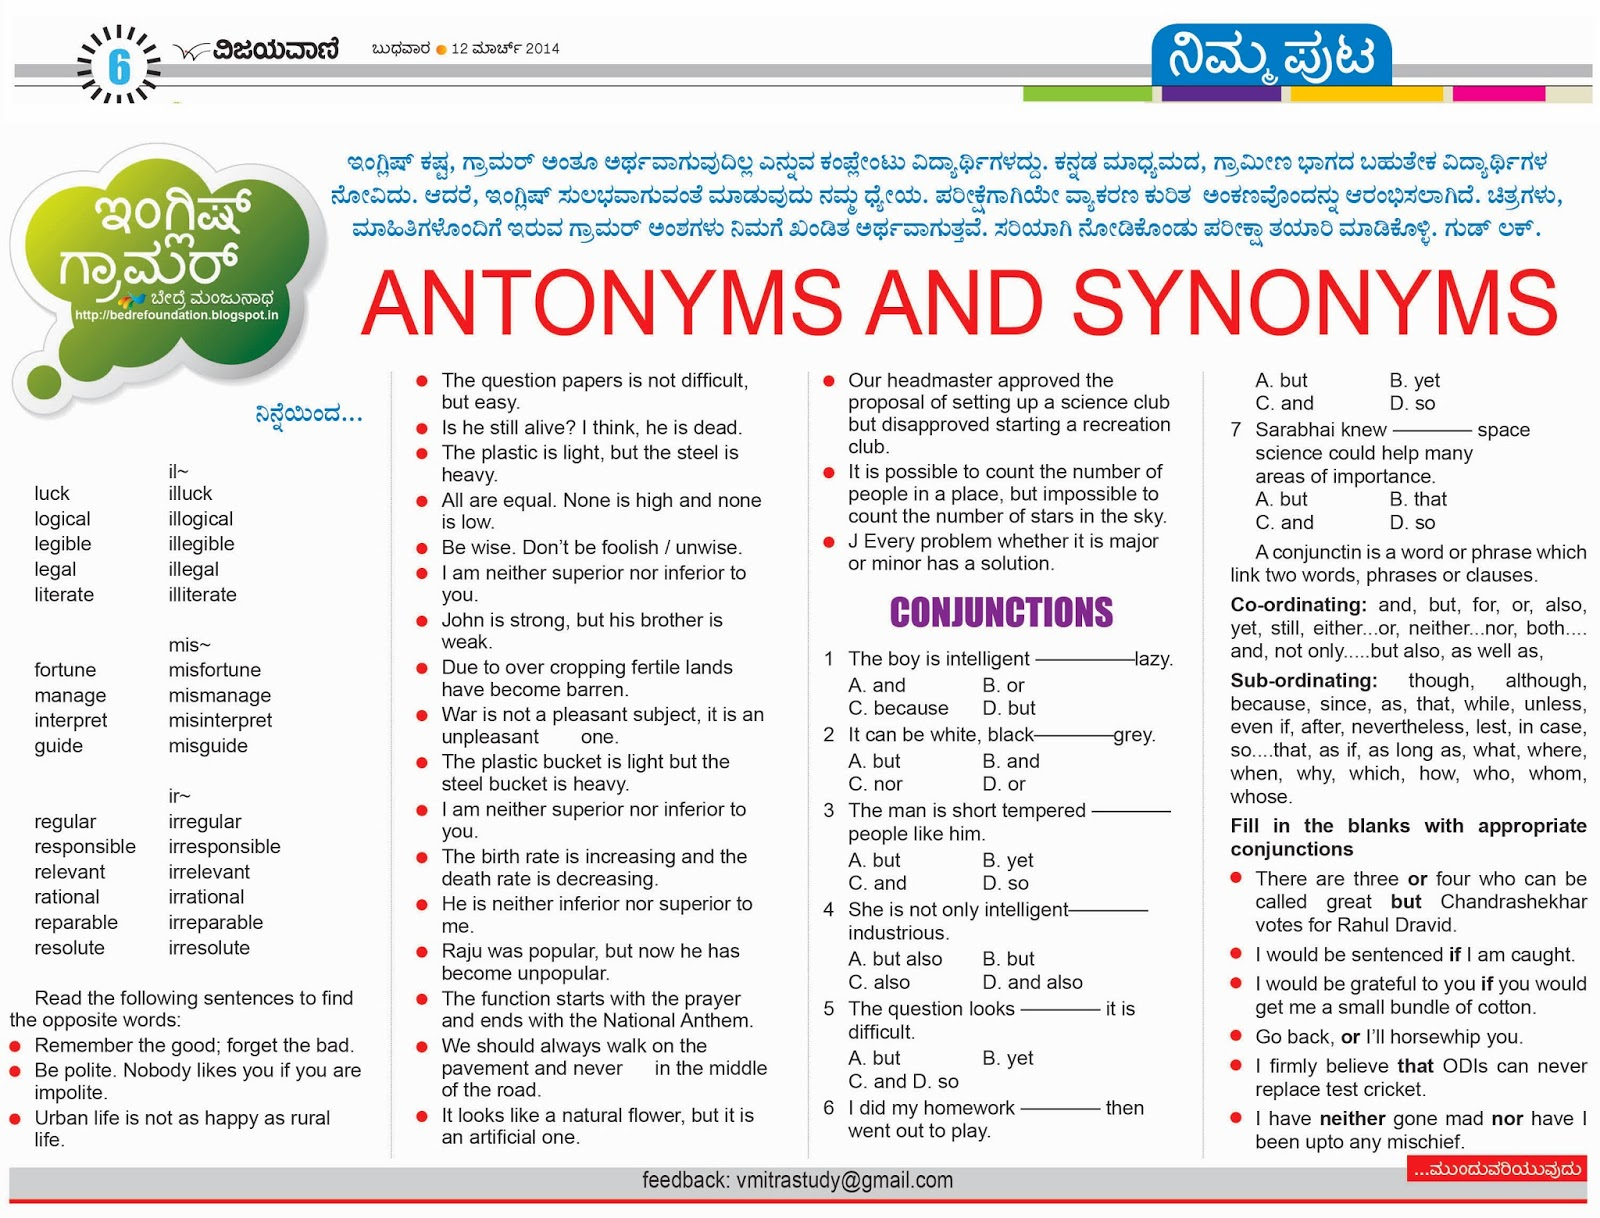 Antonyms and Synonyms Part 2 and Conjunctions - Vijayavani Student Mitra 12  March 2014